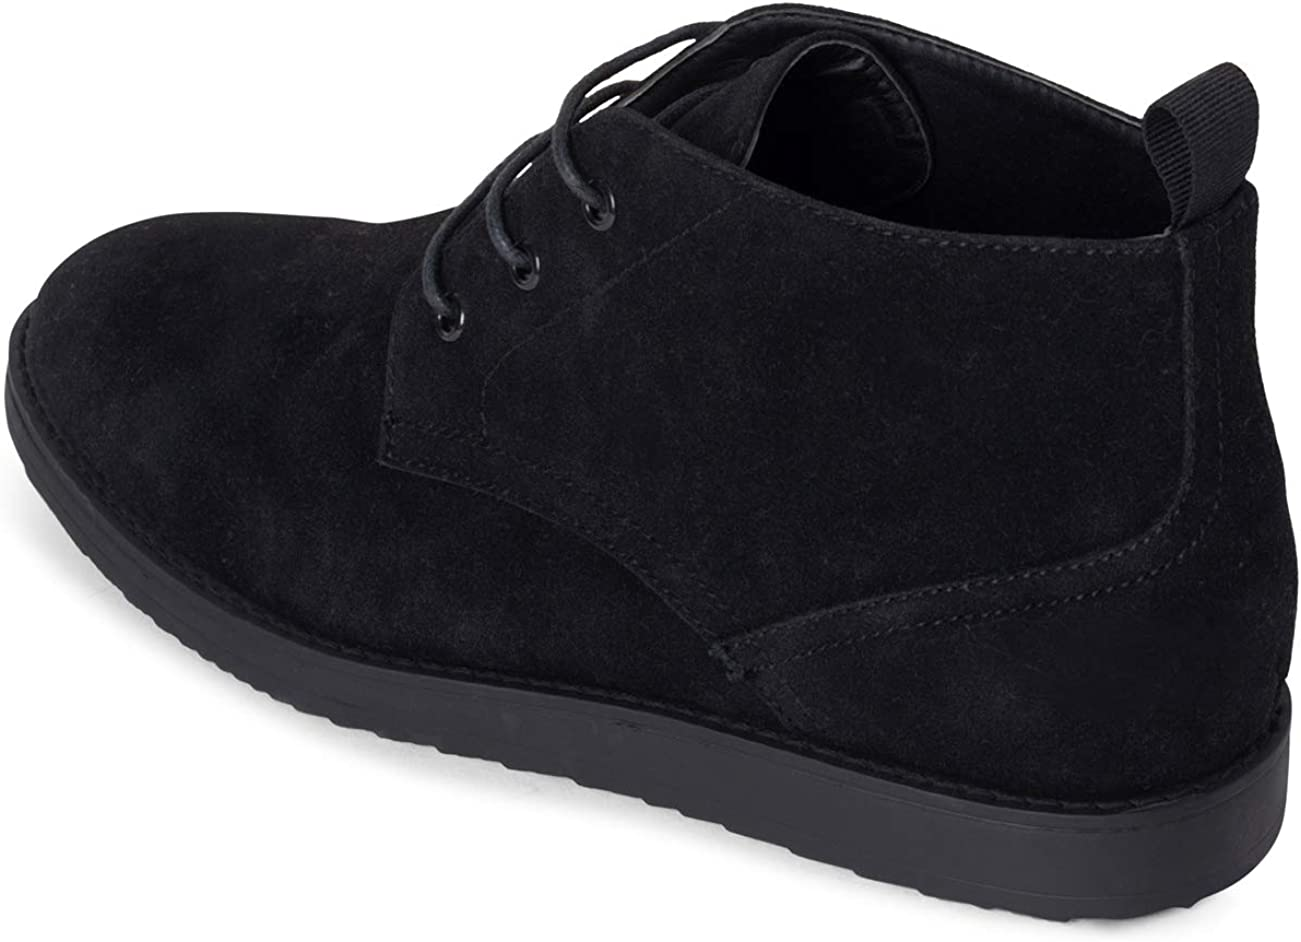 Mens Queensberry Harley Chukka Work Office Formal Casual Desert Boots